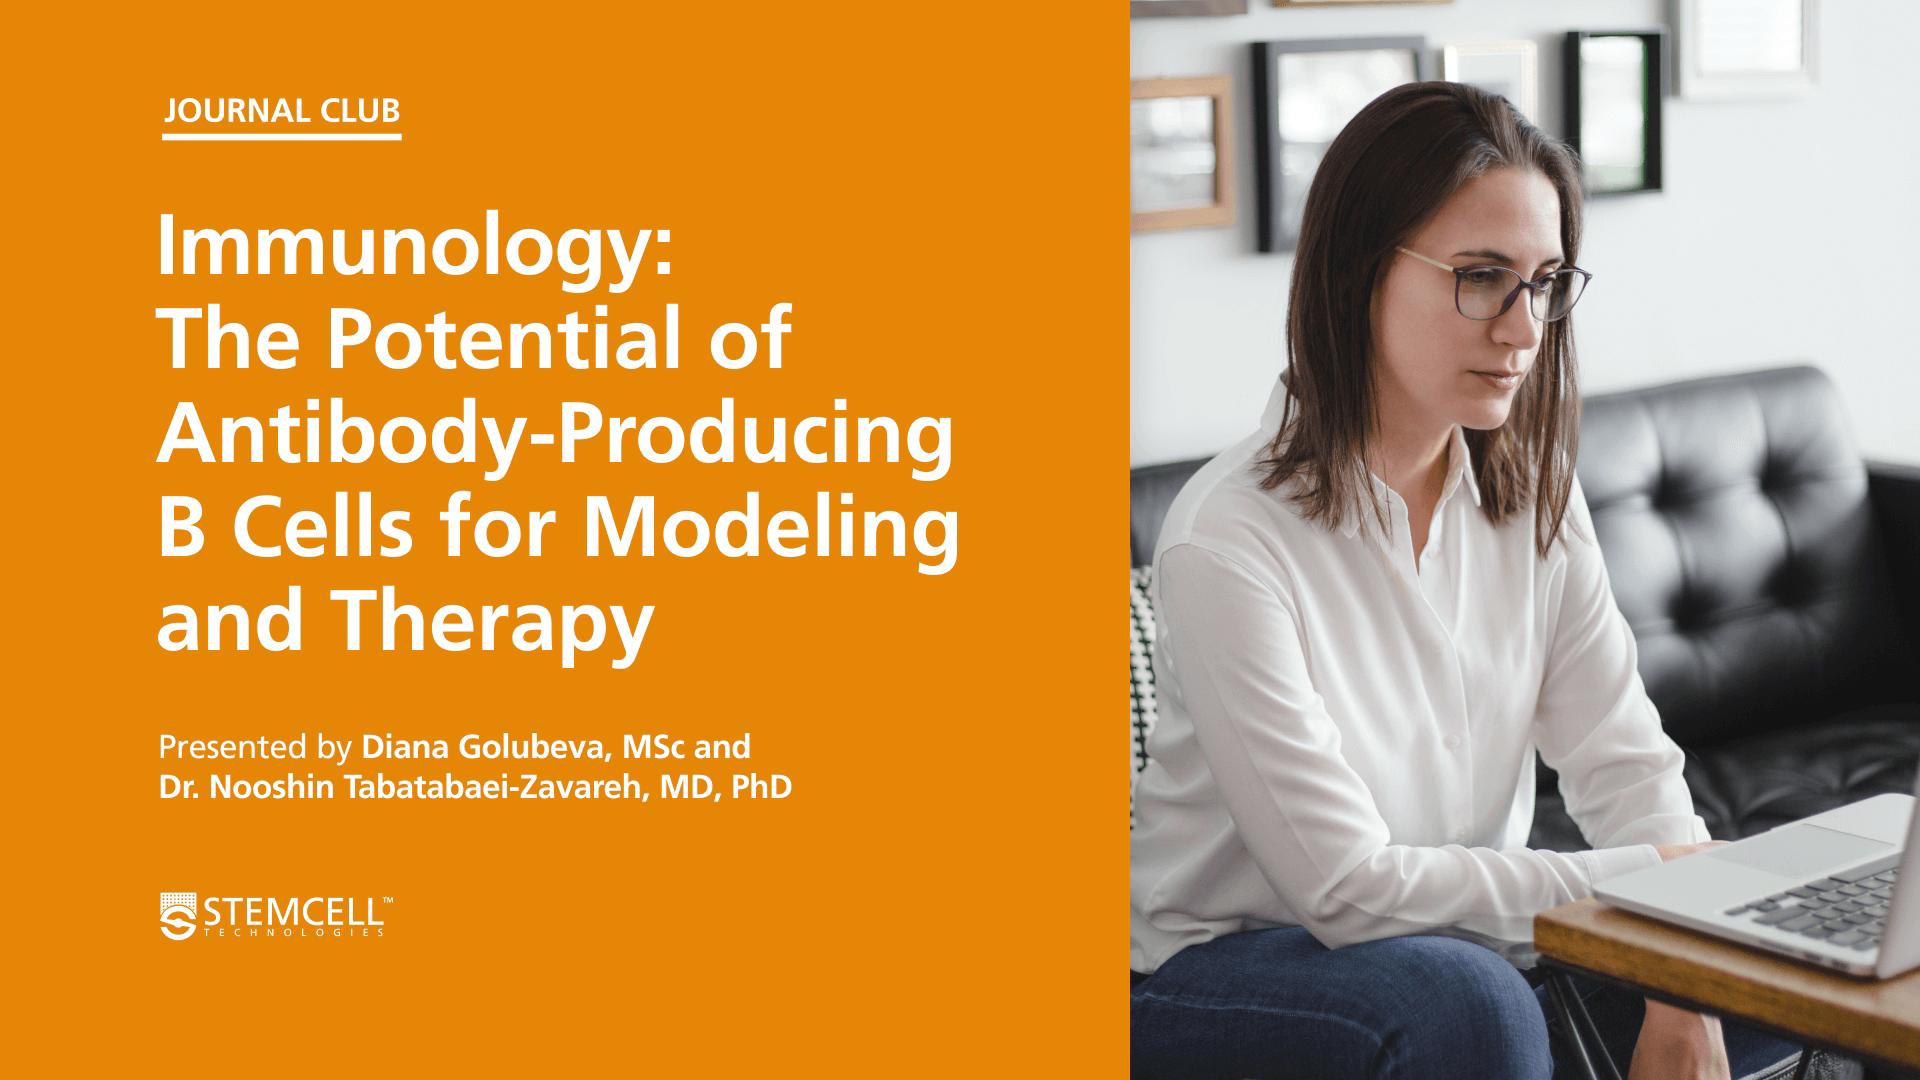 Online Immunology Journal Club: The Potential of Antibody-Producing B Cells for Modelling and Therapy